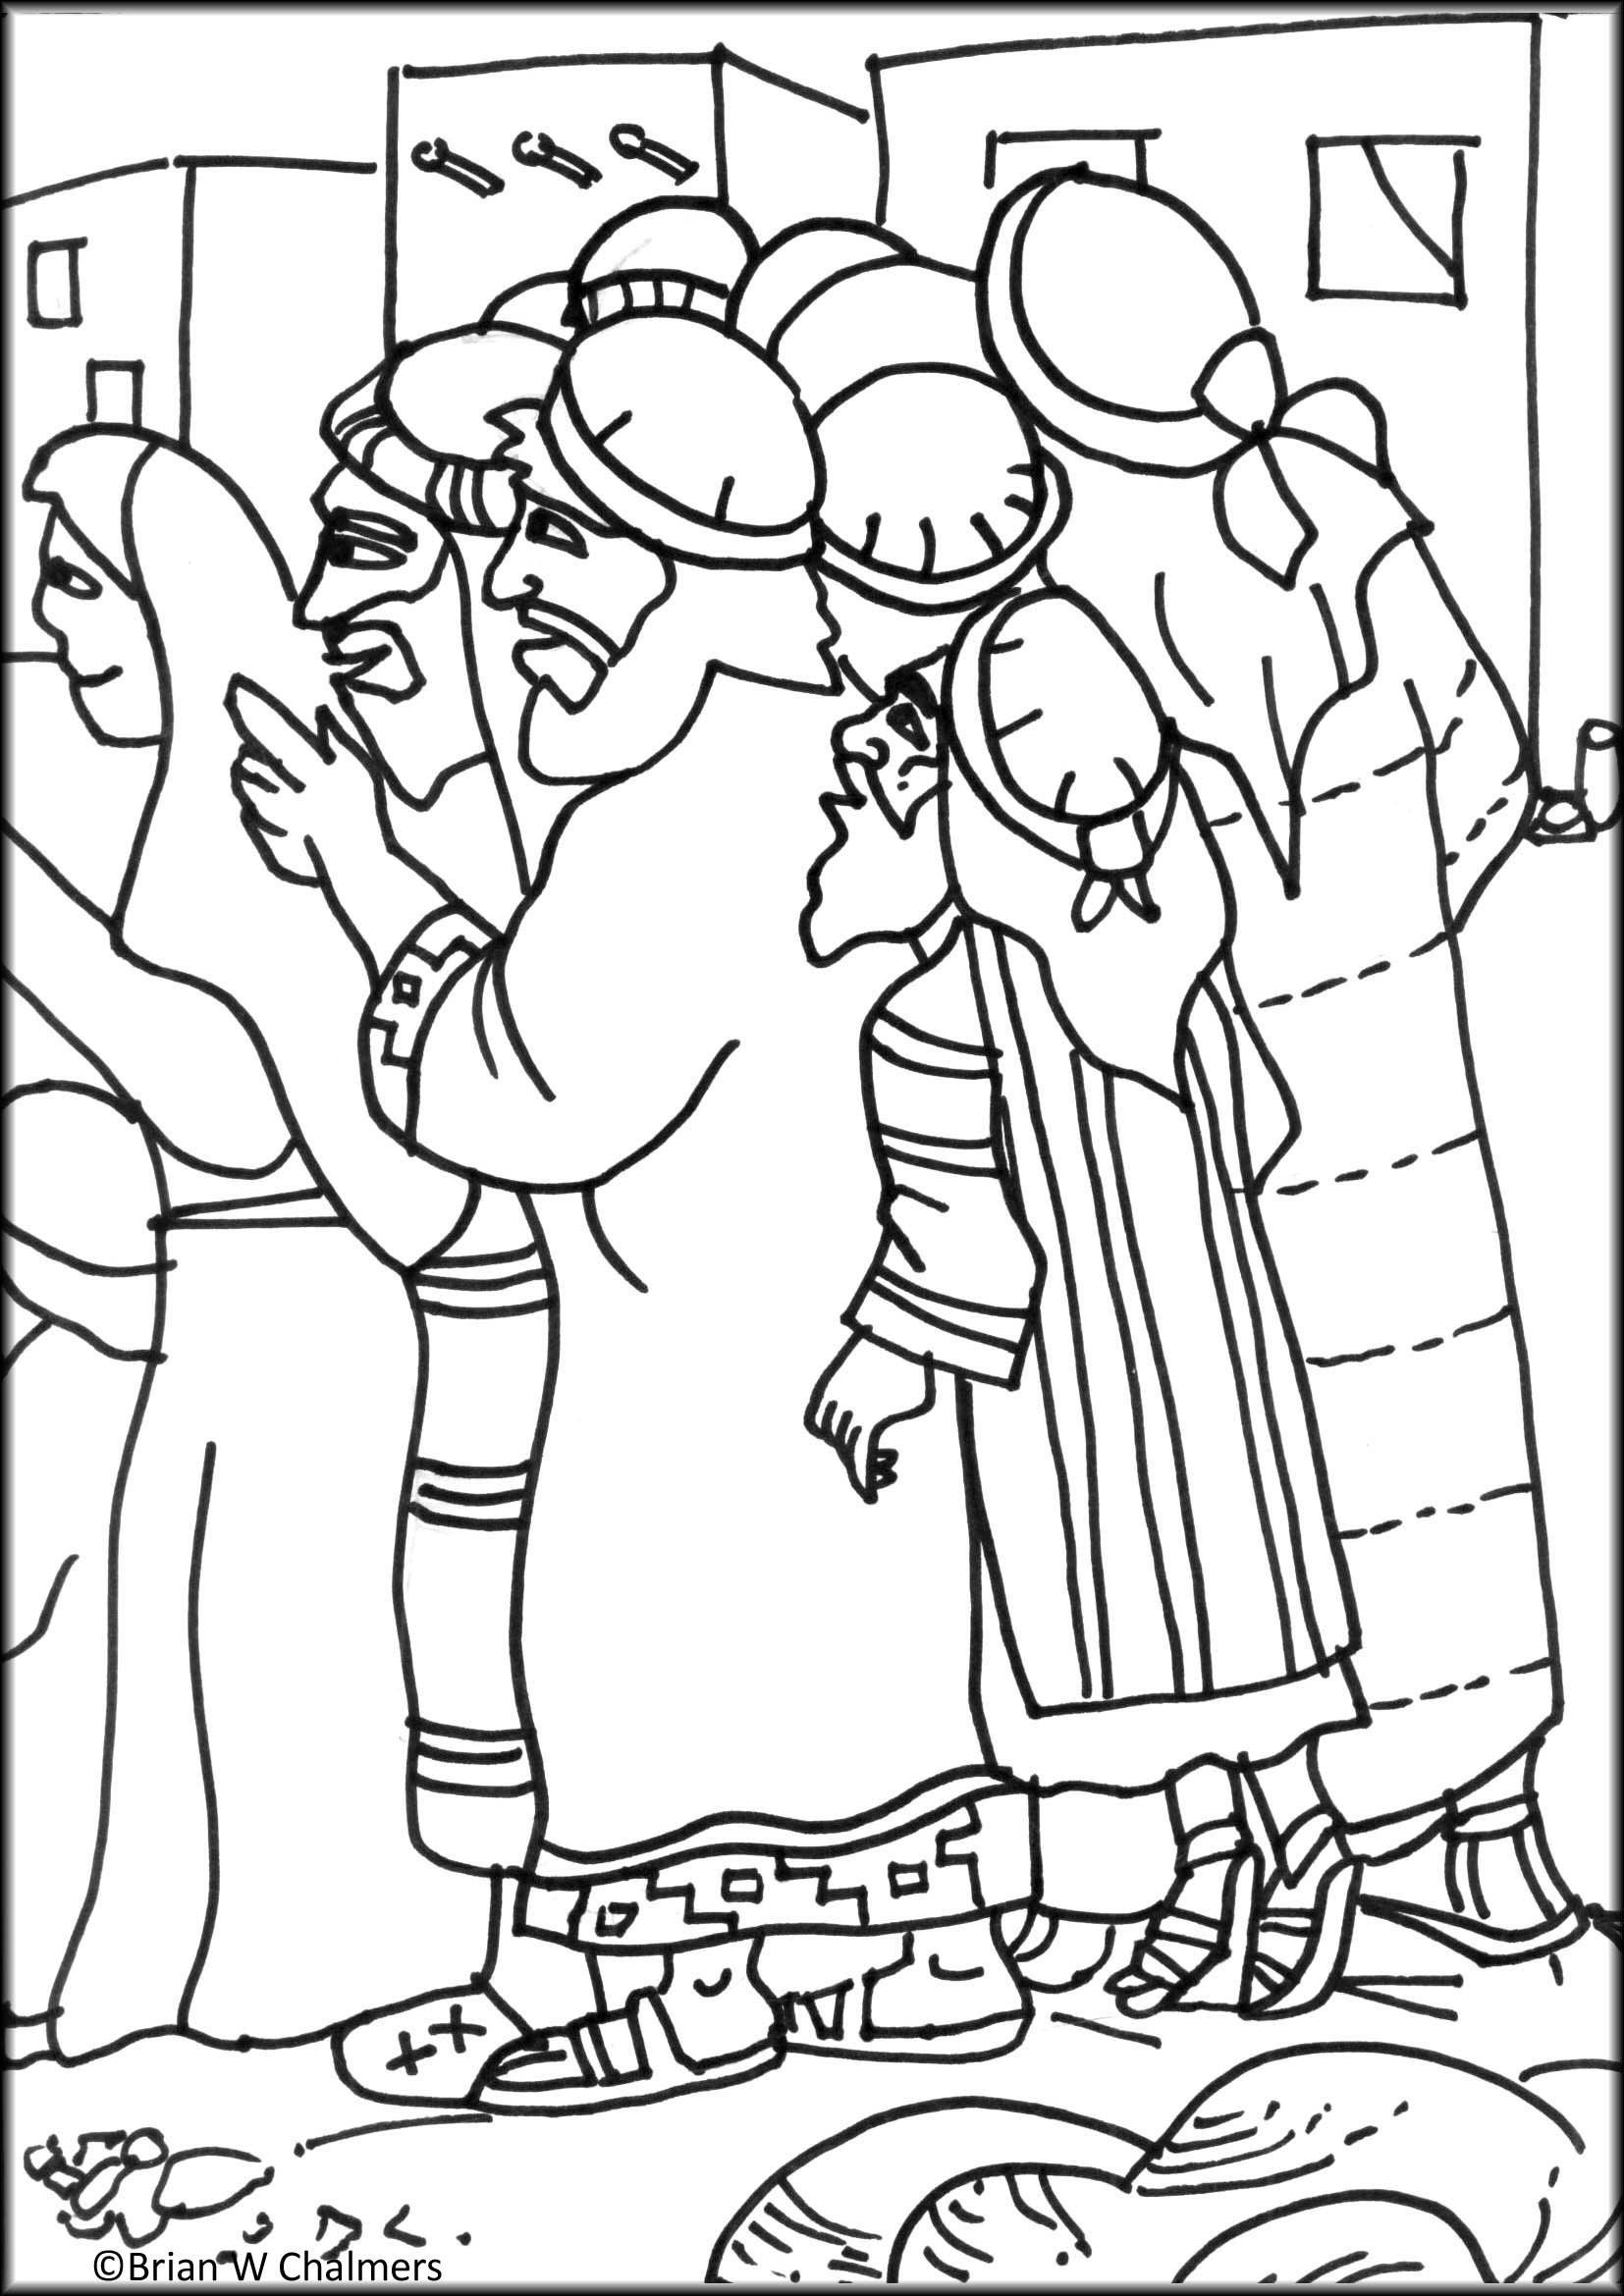 Zacchaeus Coloring Pages For Preschoolers Free Zacchaeus Coloring Page Kids Download Fre Jesus Coloring Pages Sunday School Coloring Pages Bible Coloring Pages